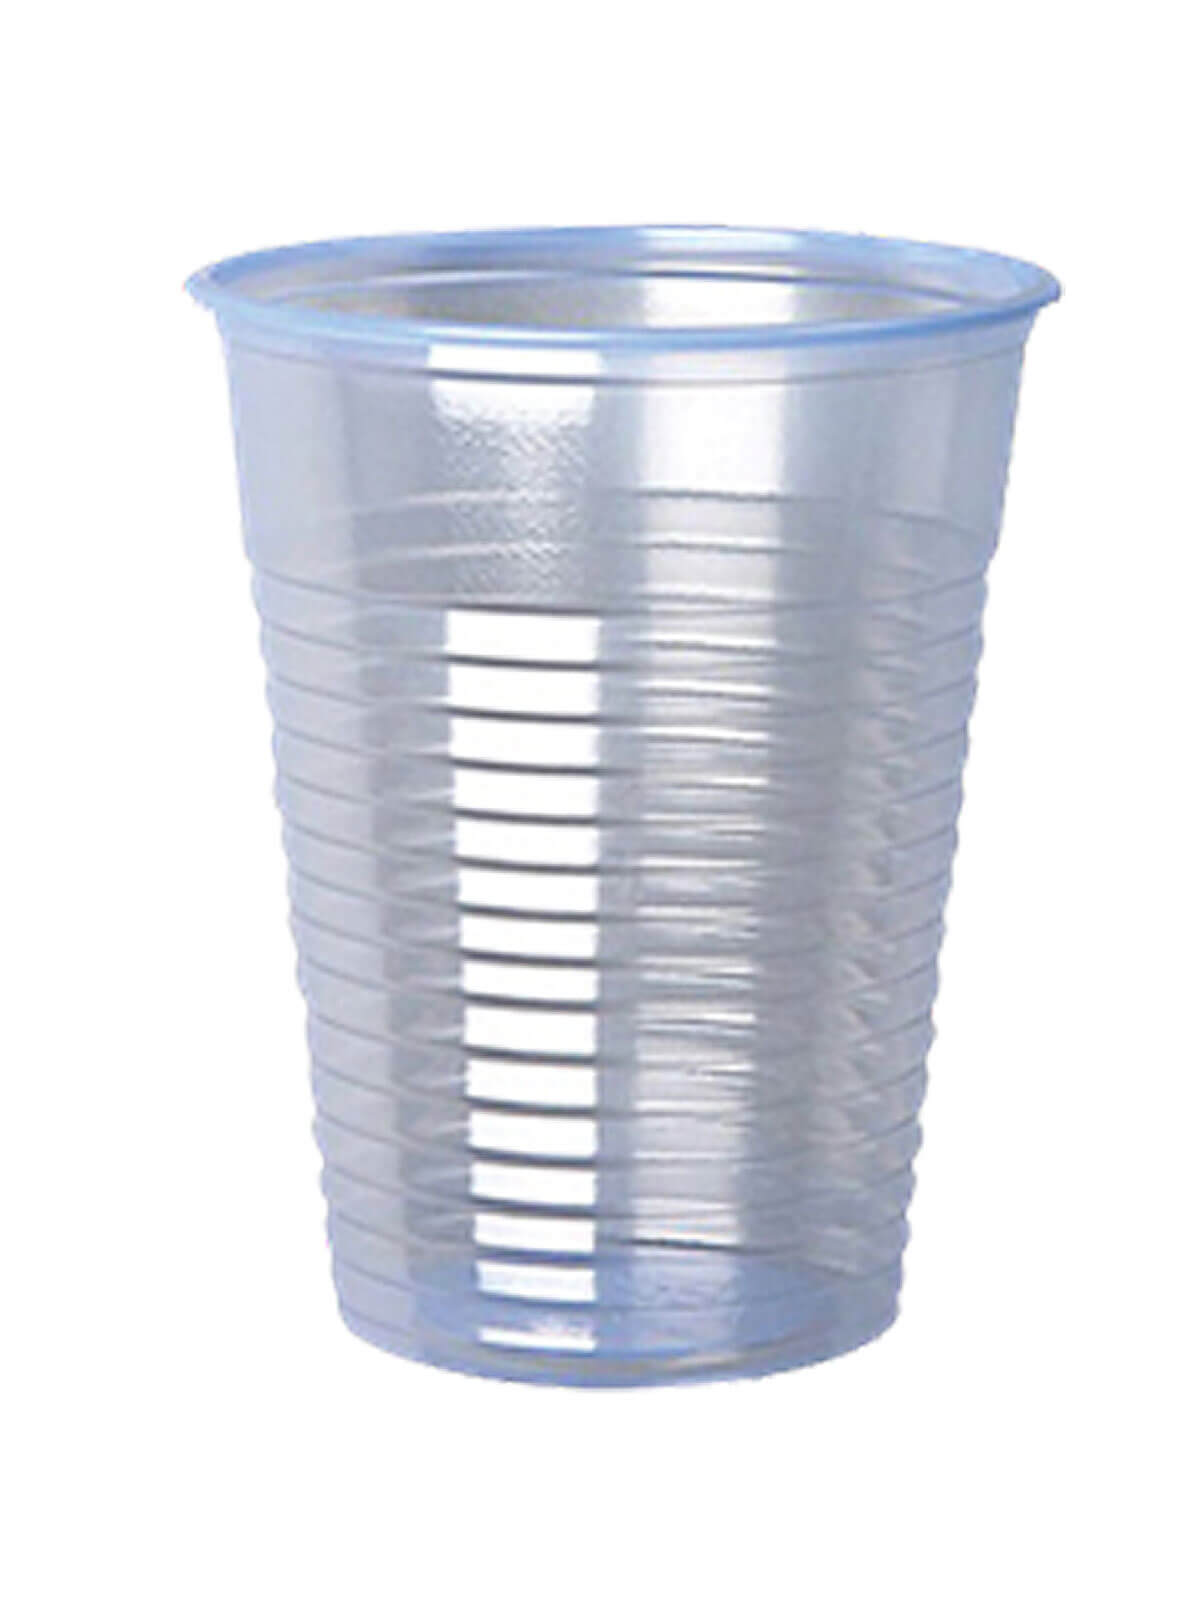 Plastic Cups For Water Coolers Glug Glug Glug